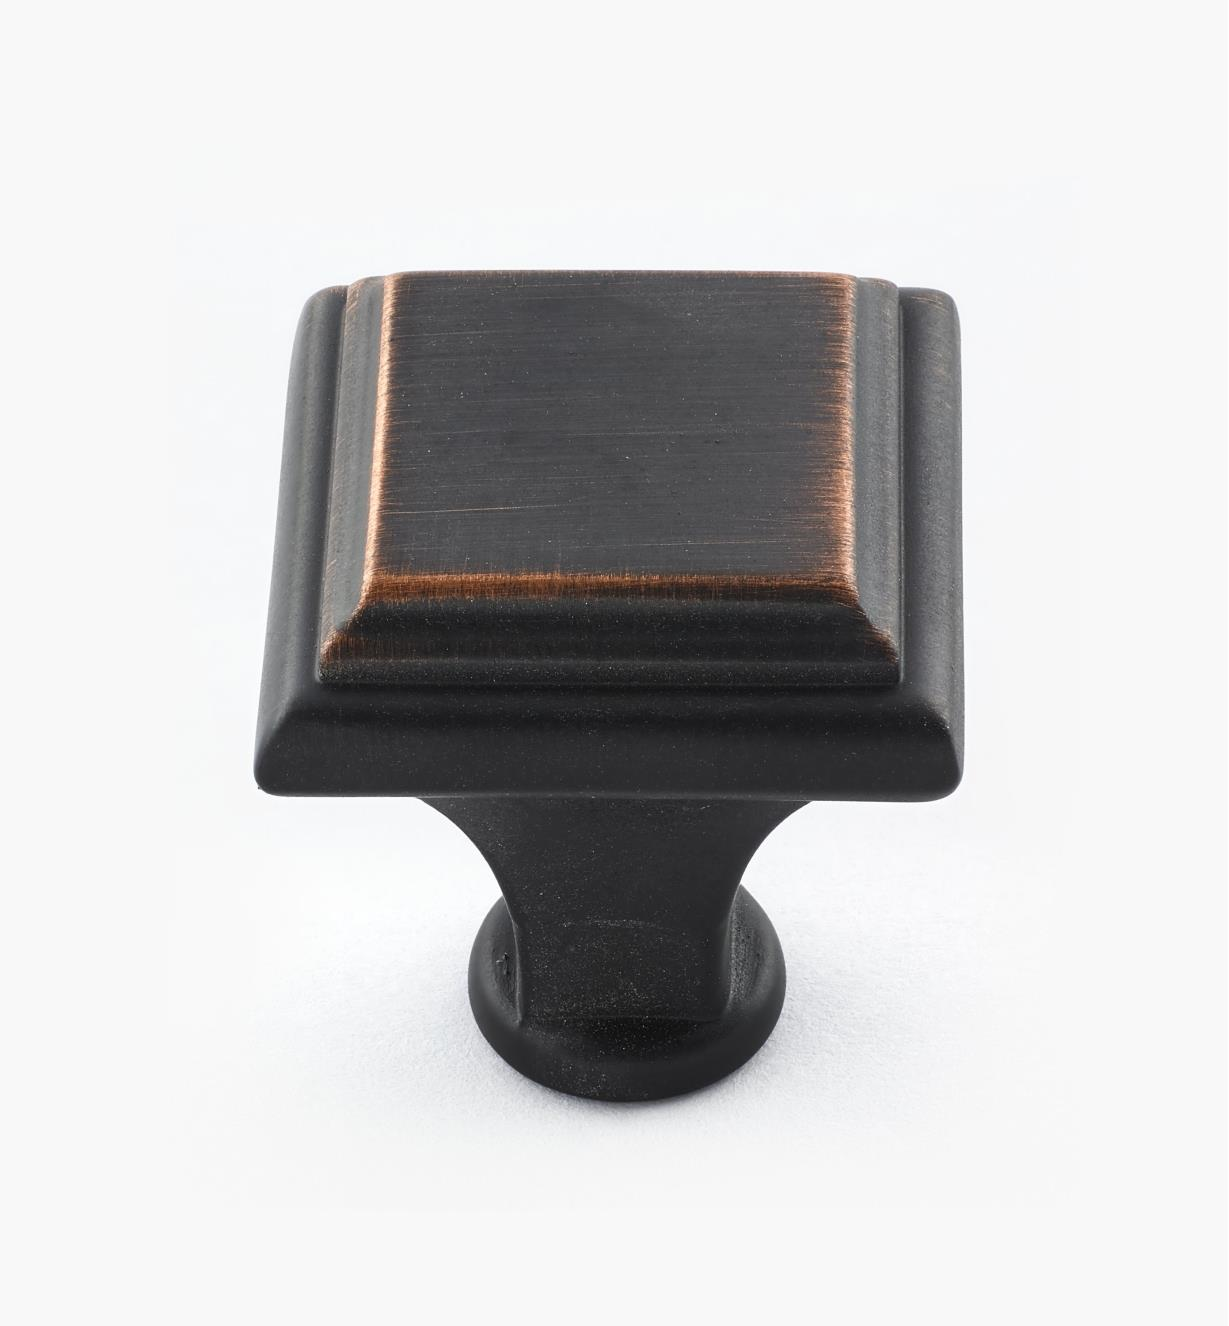 02A3955 - Manor Oil-Rubbed Bronze Knob